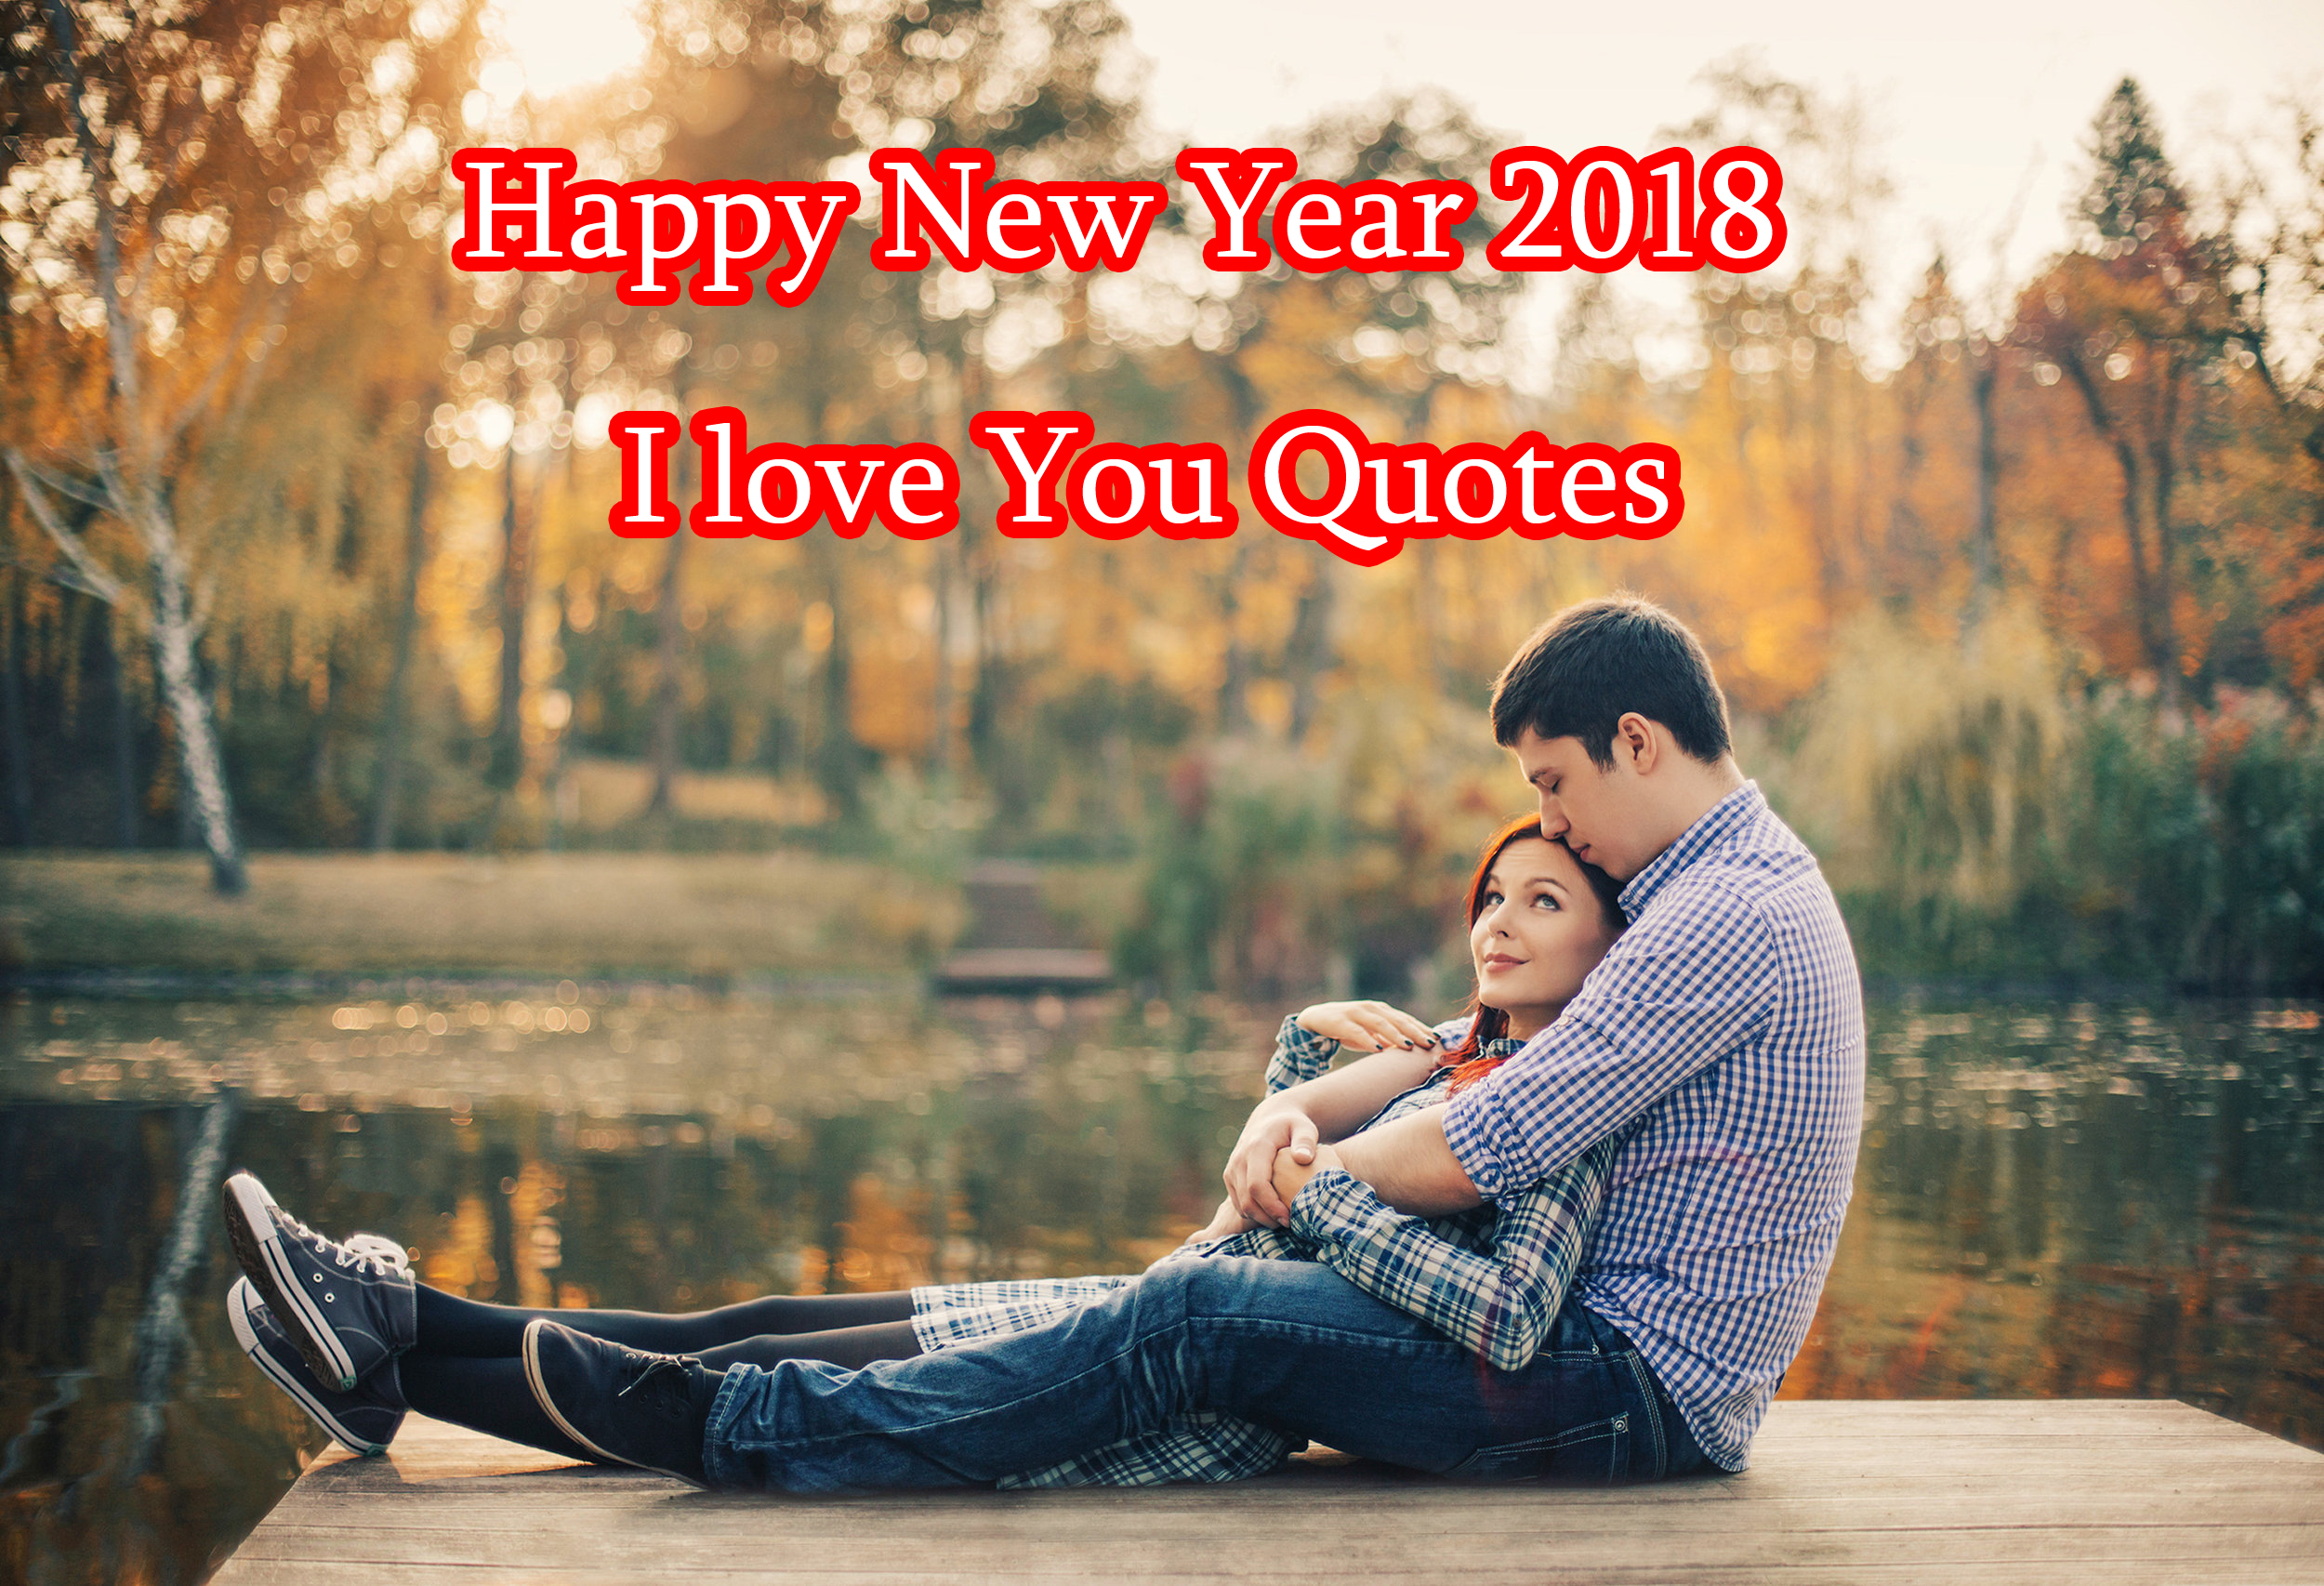 20 Happy New Year 2019 I Love You Quotes Images For Couples Happy